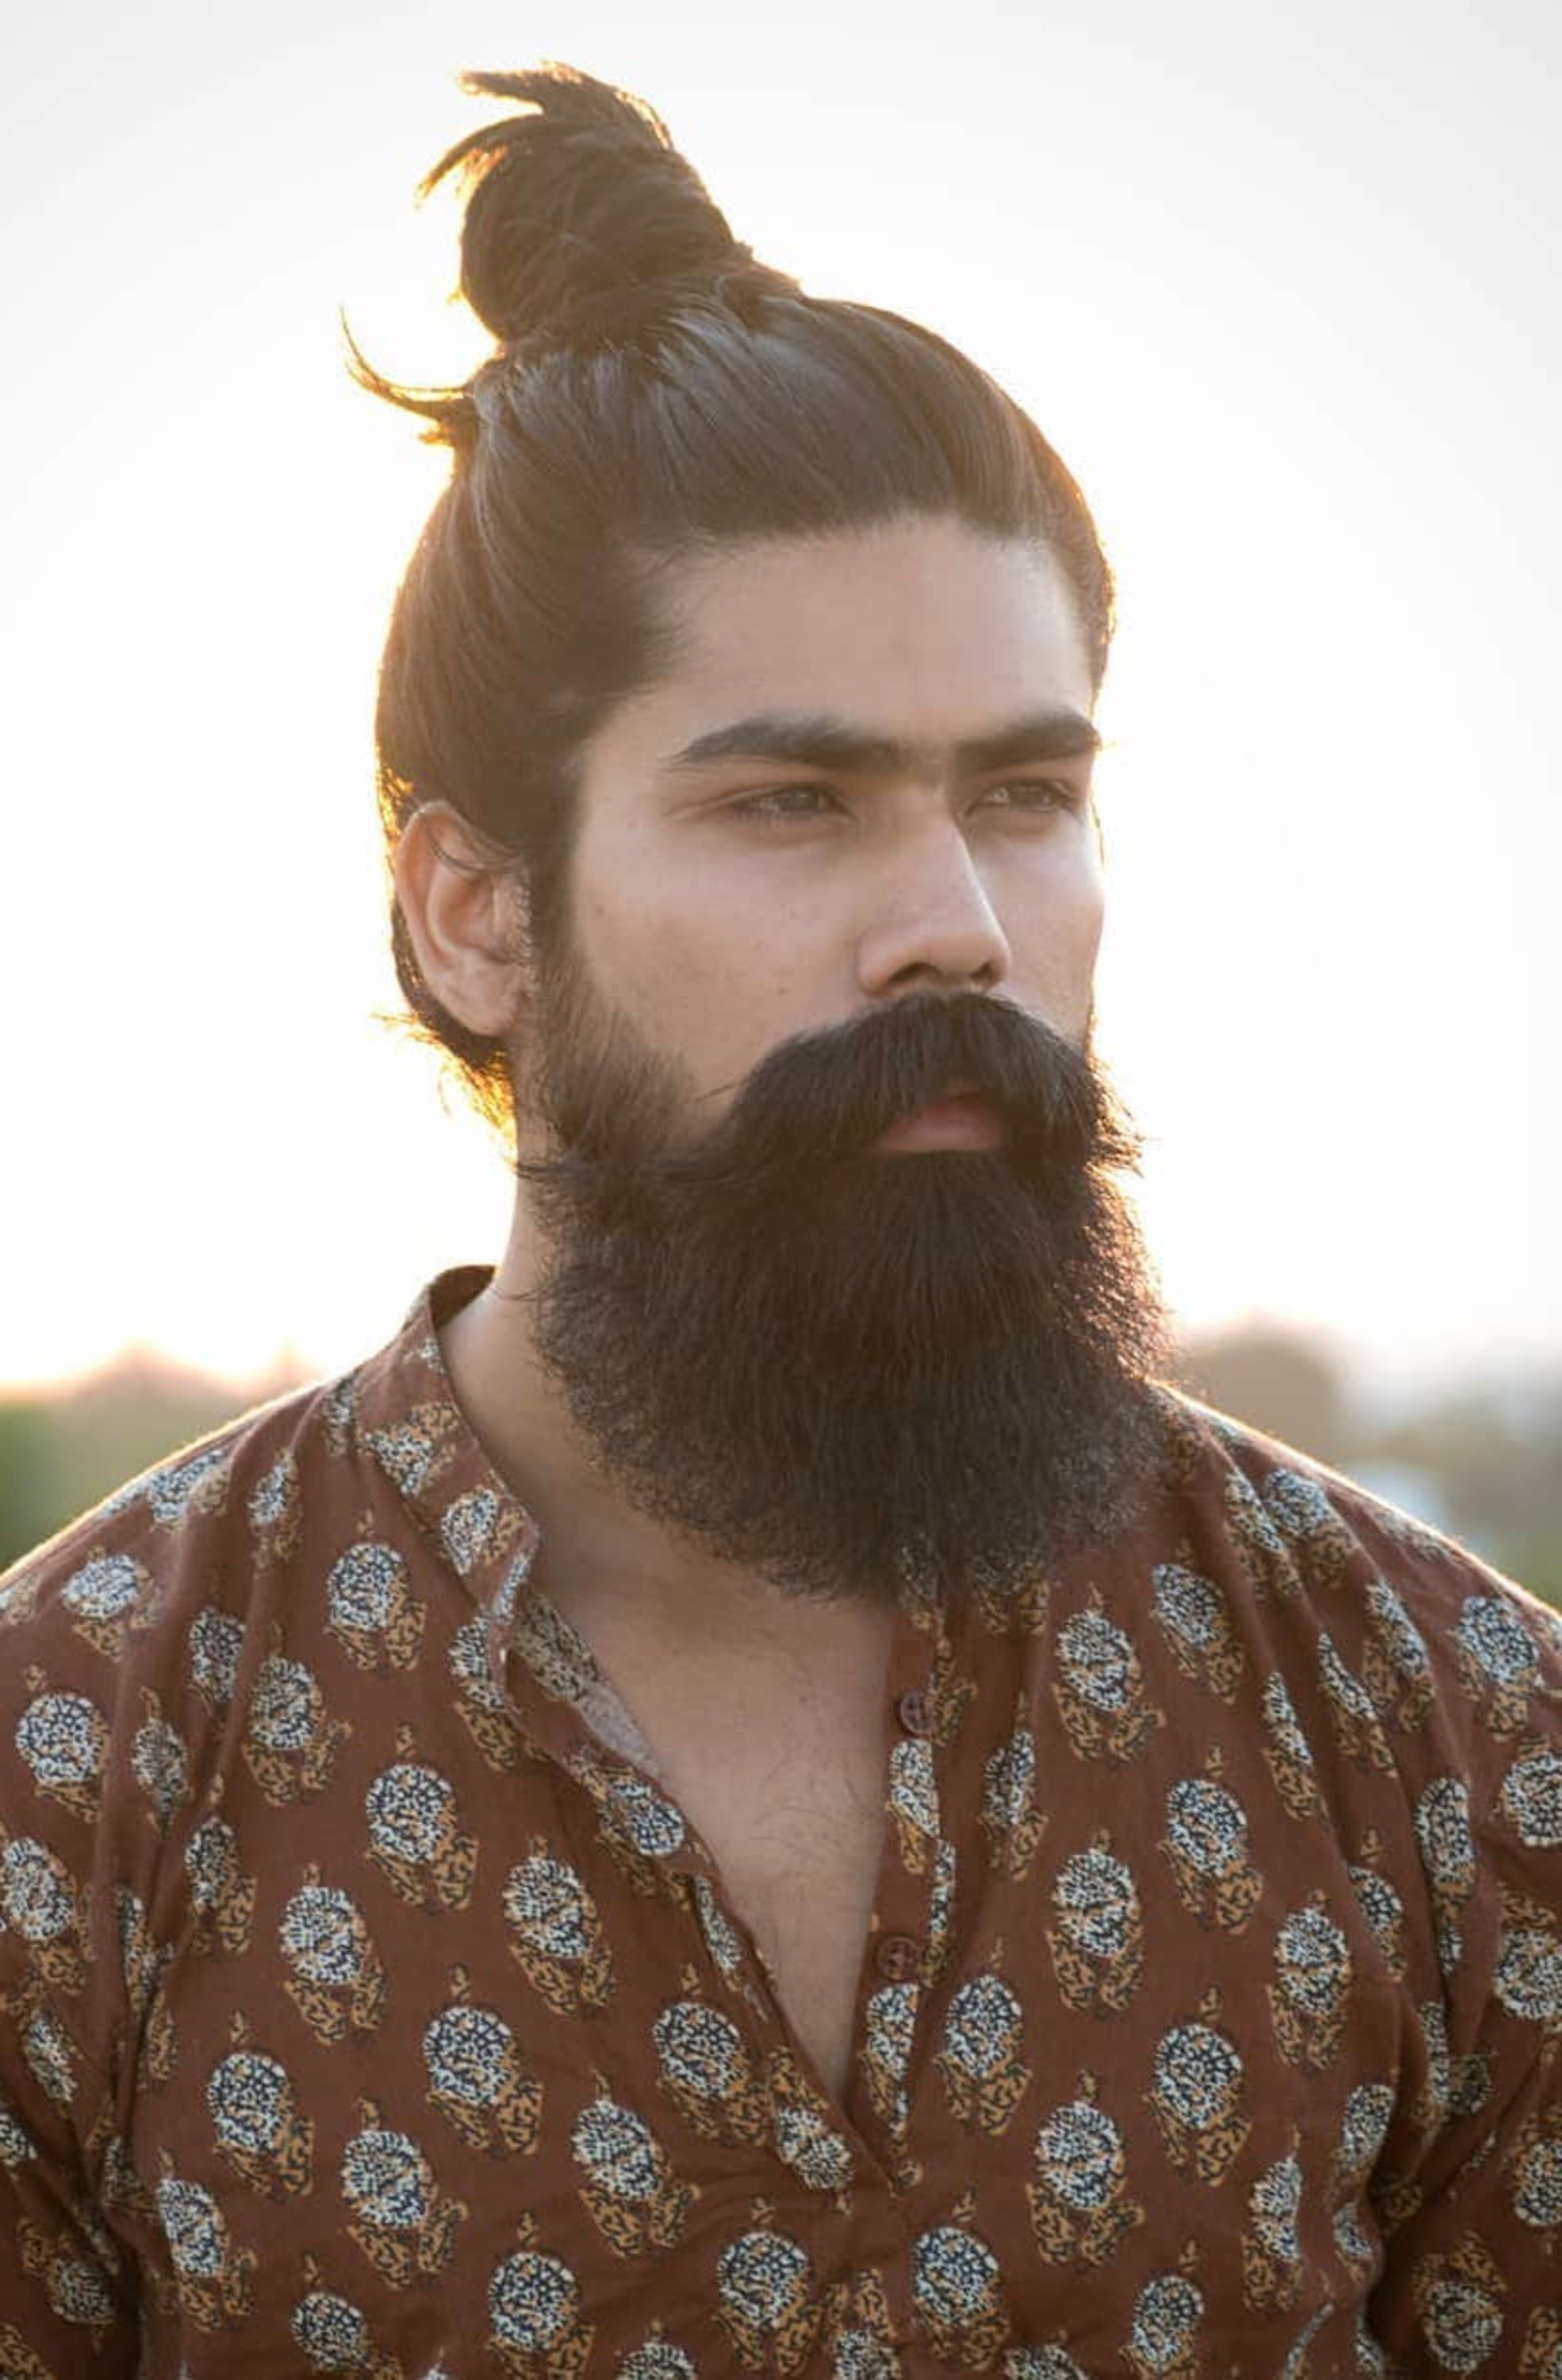 A bun hairstyle for men with thick hair.